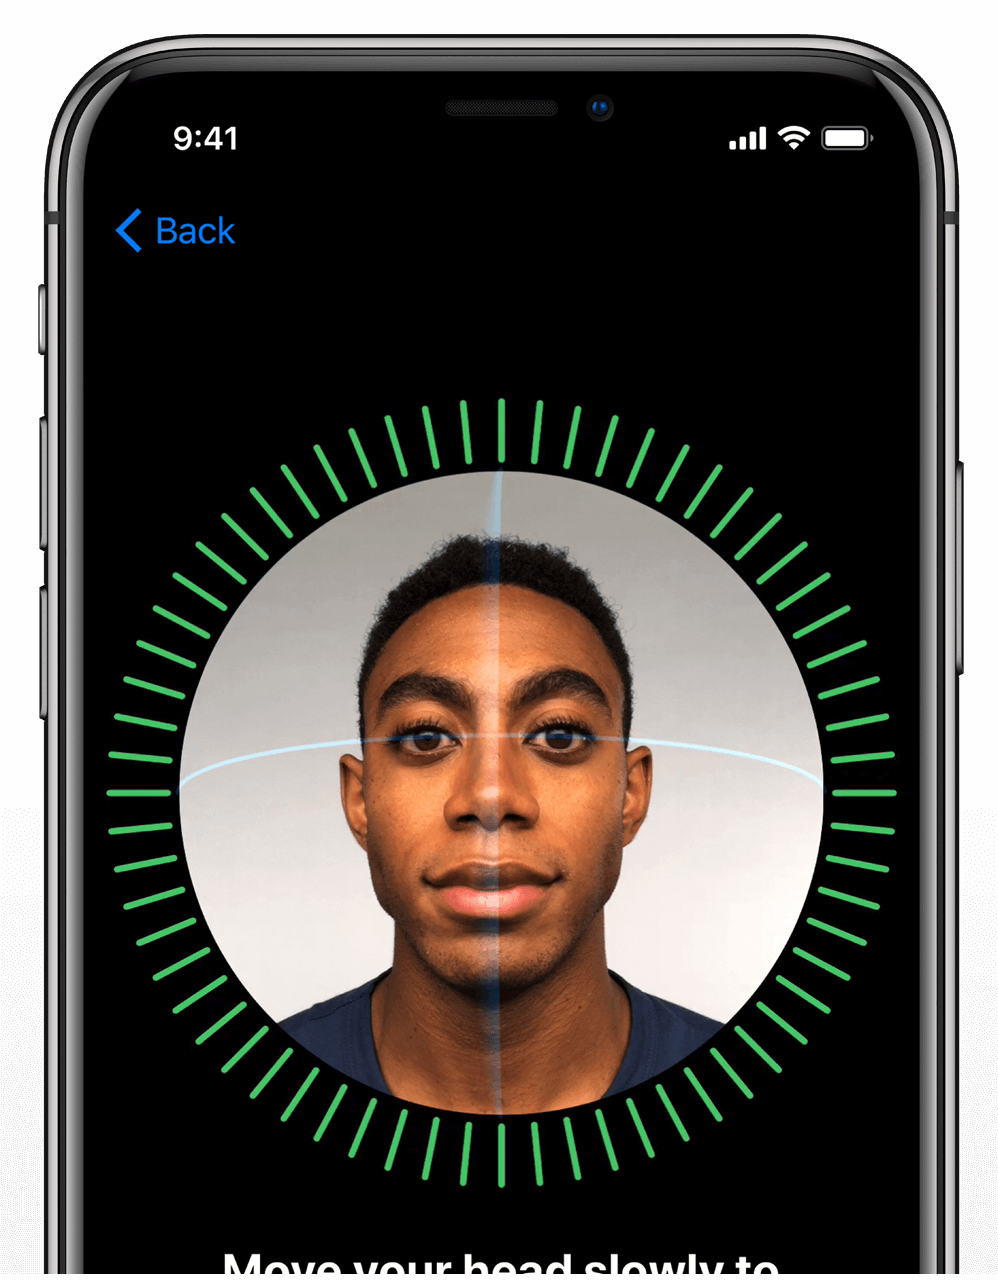 The Apple iPhone X Face ID is so easy to set up. Shop now at The Good Guys.